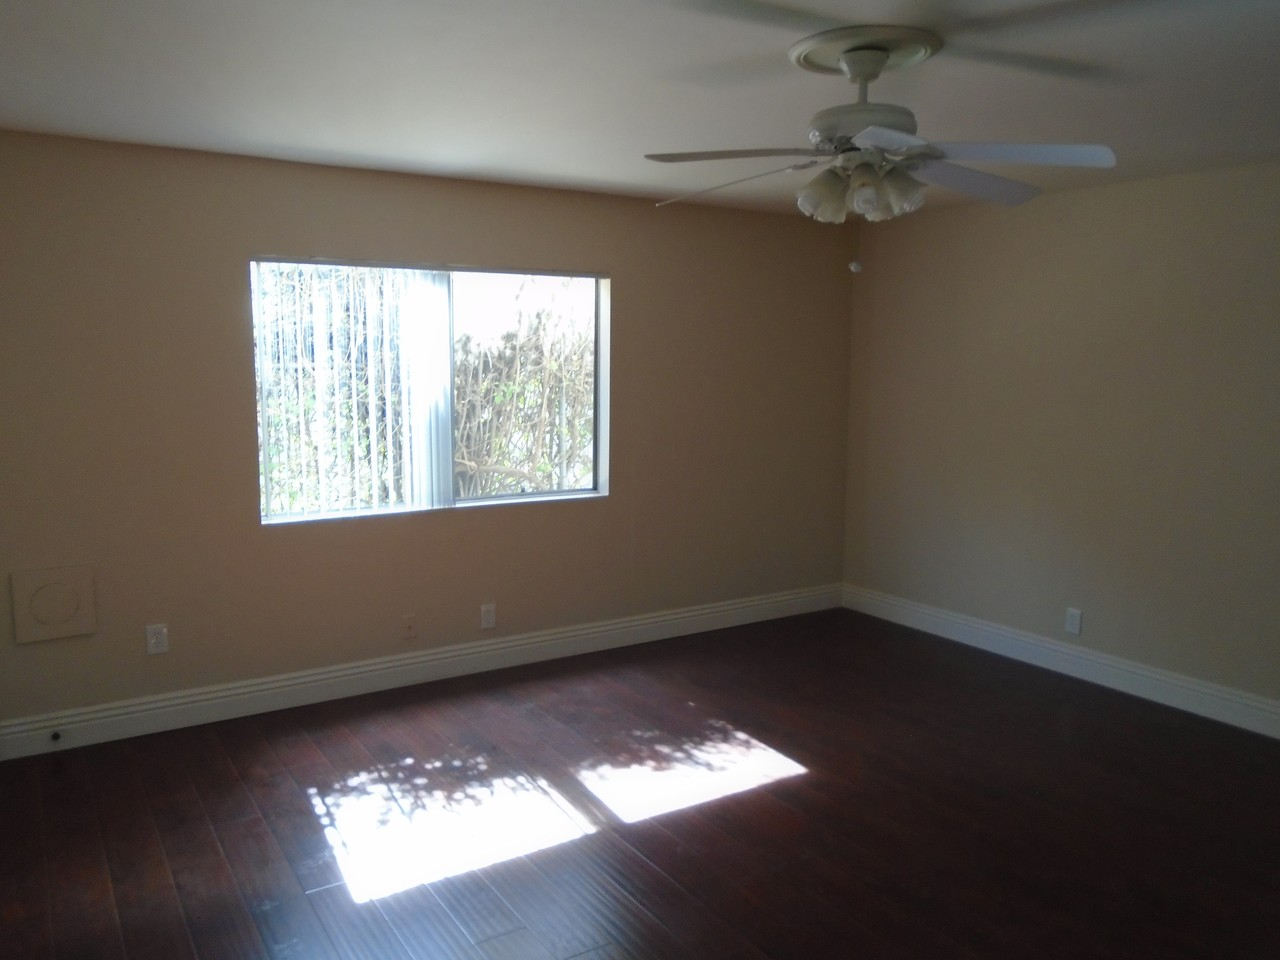 730 Magnolia Ave, Long Beach, CA 90813 Studio Apartment for Rent for ...